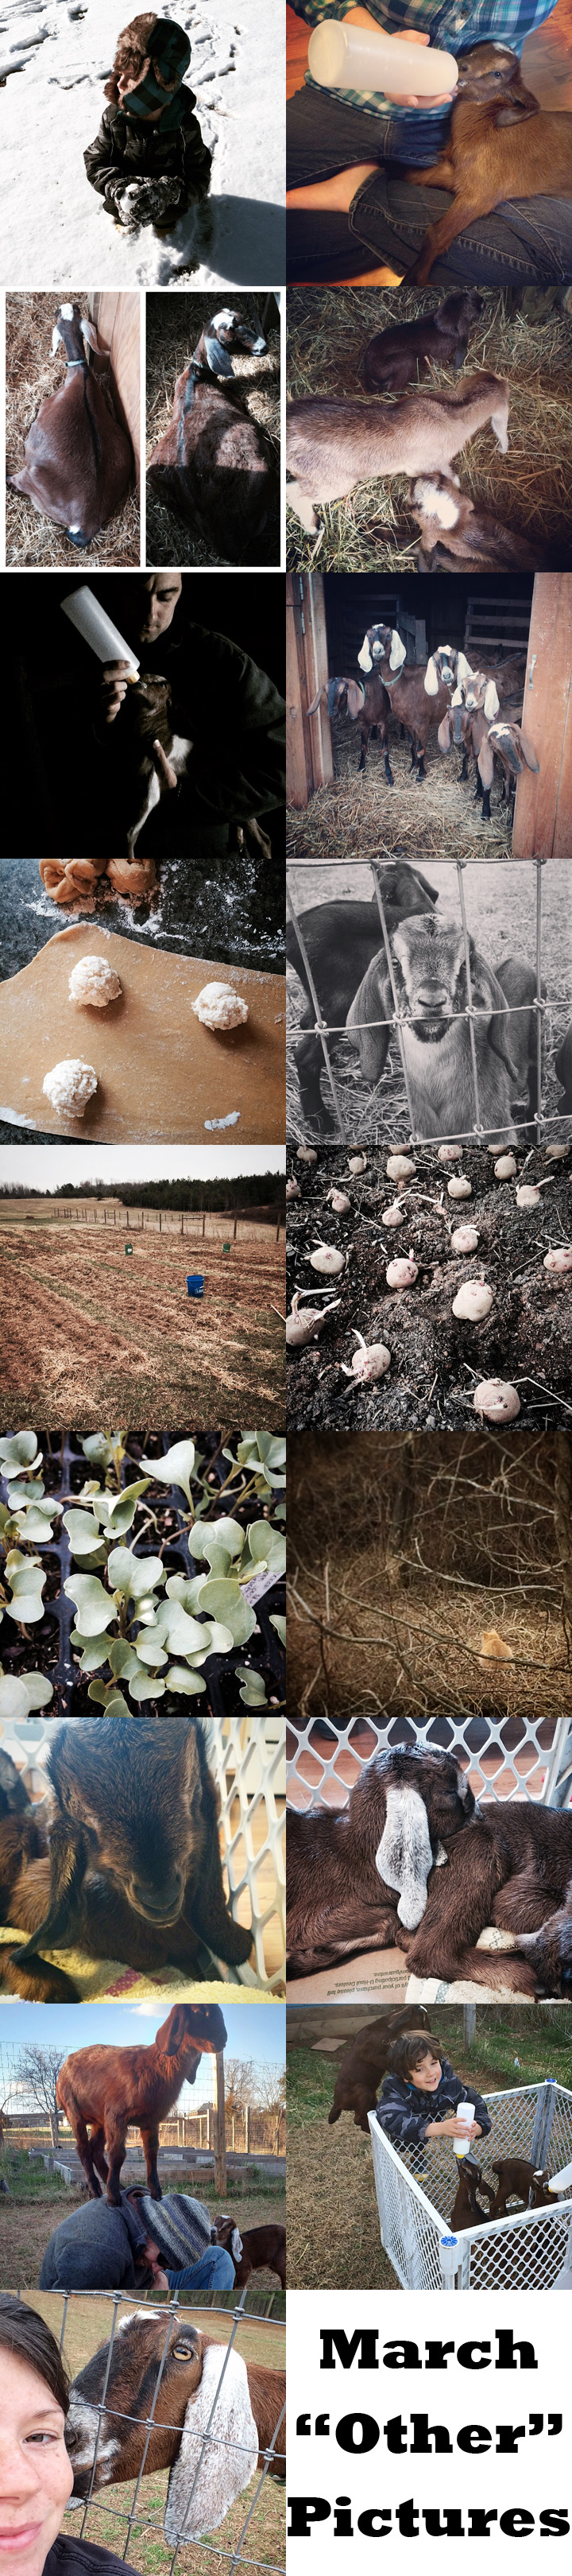 March other pictures - The Freckled Farm